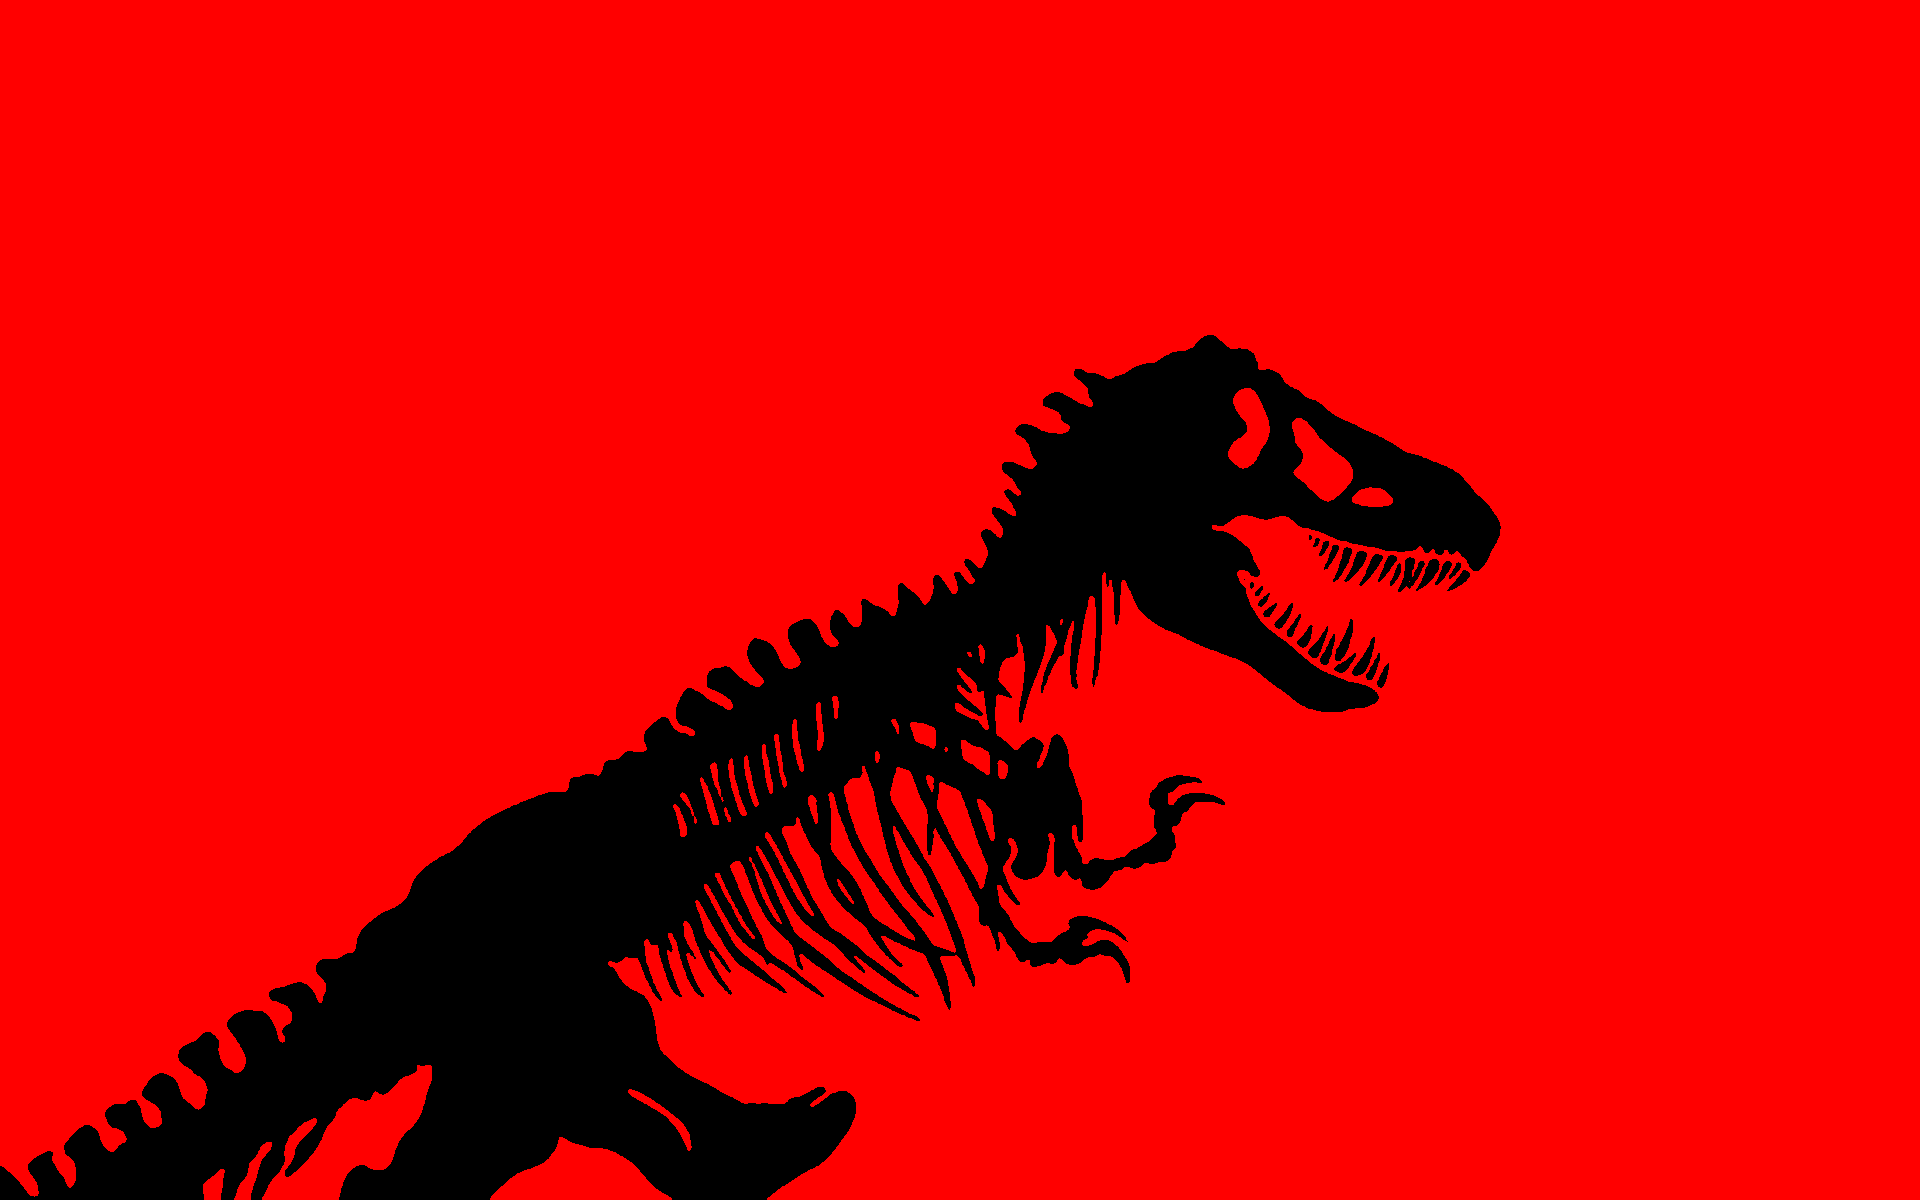 Cute Dino Wallpaper Red